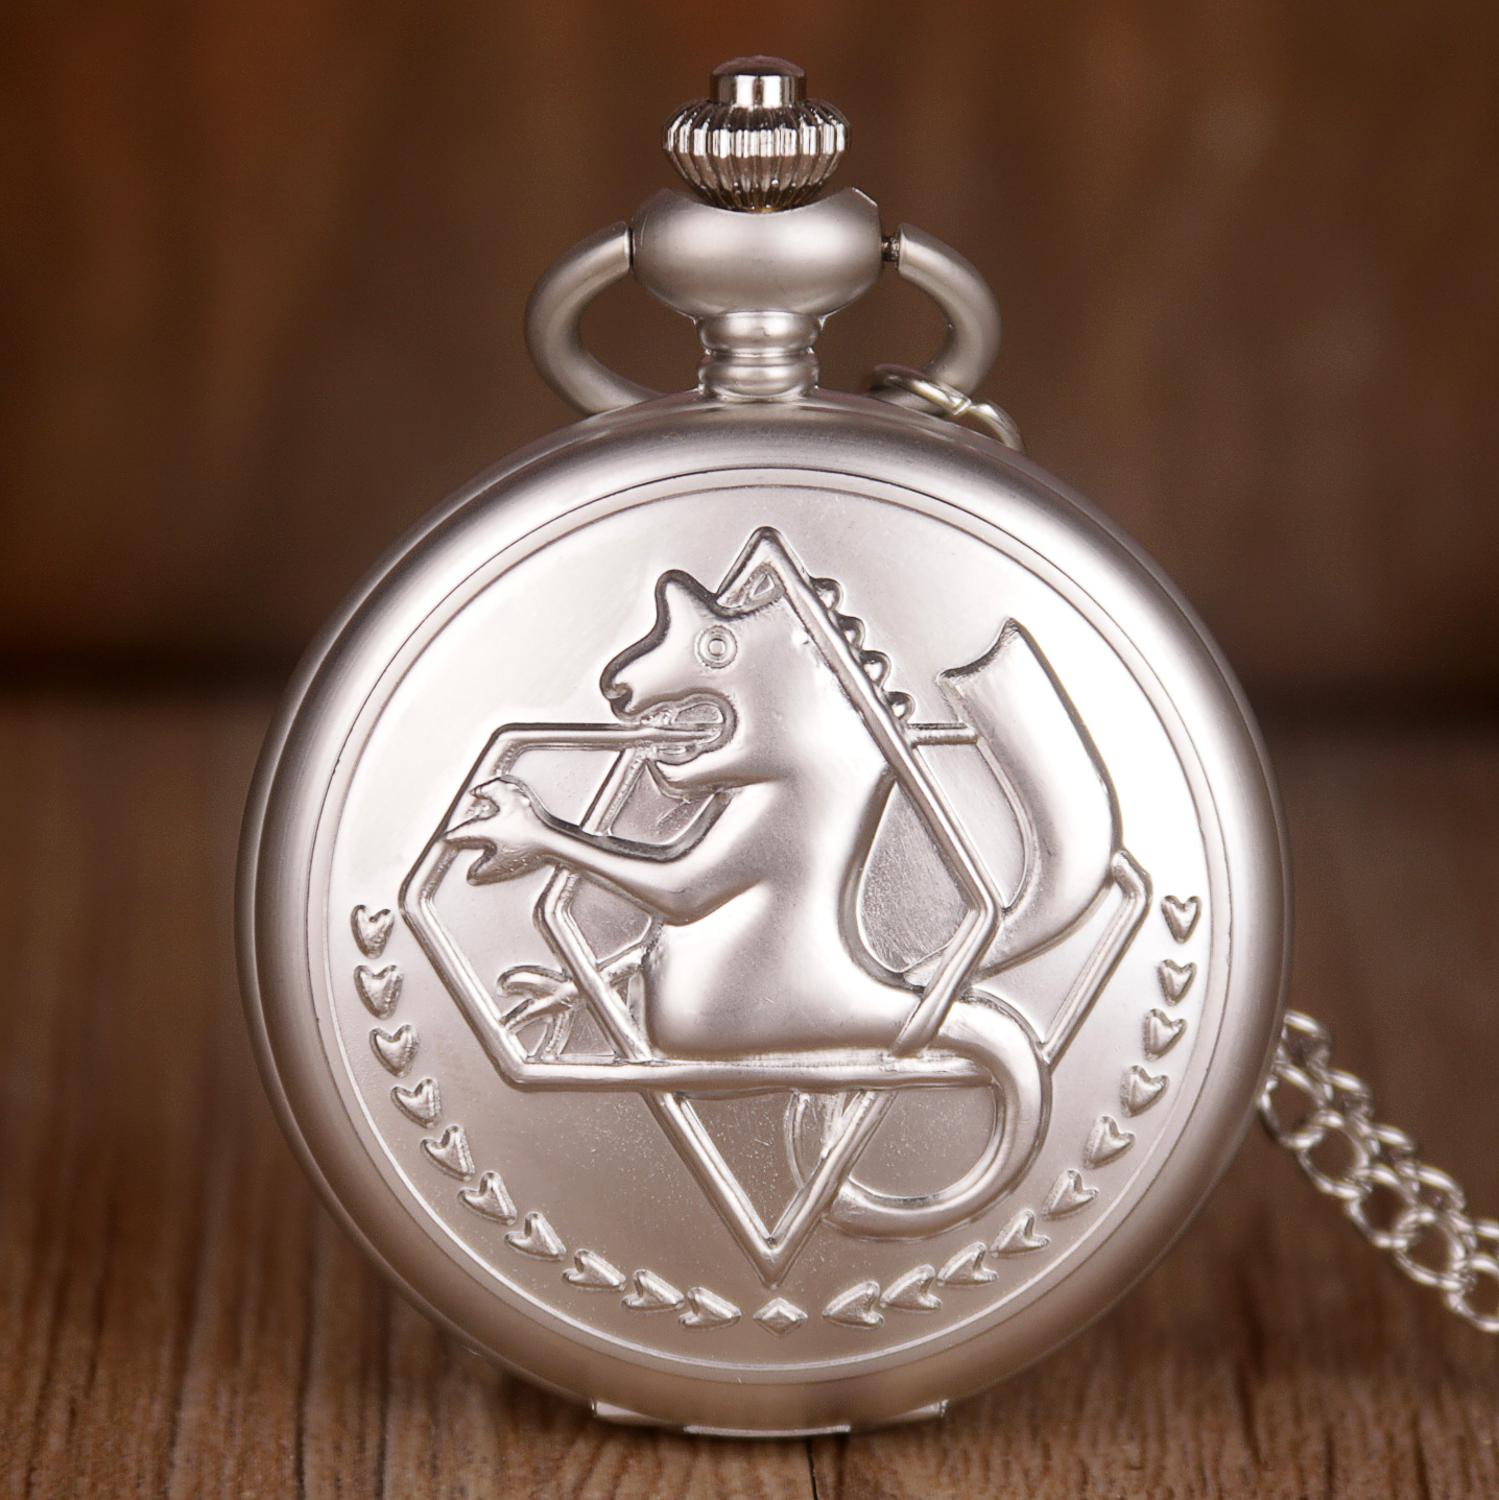 Full Metal Alchemist White Pocket Watch Pendant Men's Quartz Pocket Watches Japan Anime Necklace Chain Gifts For Children Boy